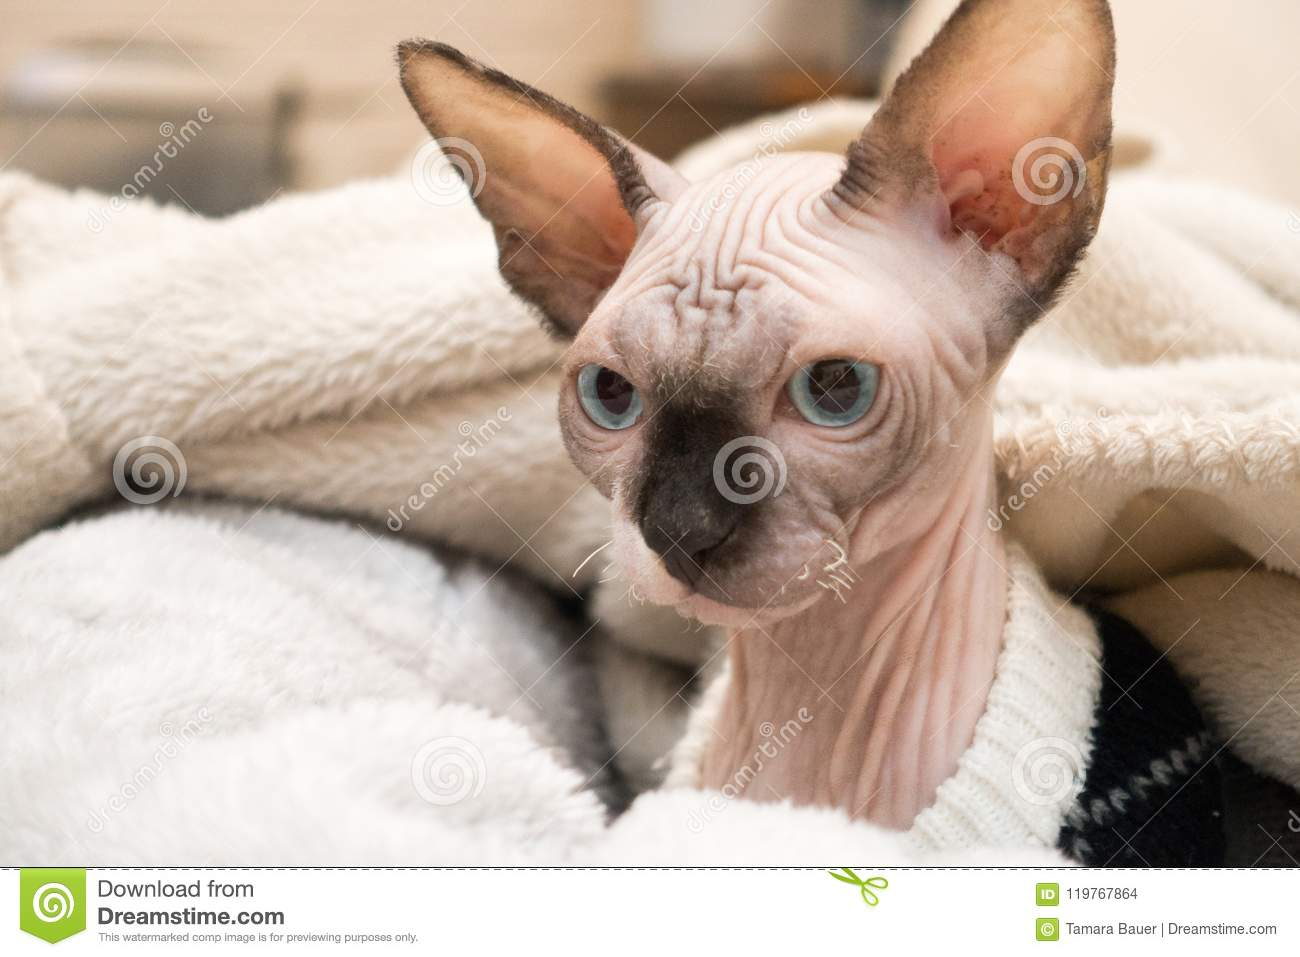 Sphynx Kitten Lying In Blankets Stock Photo - Image of bald